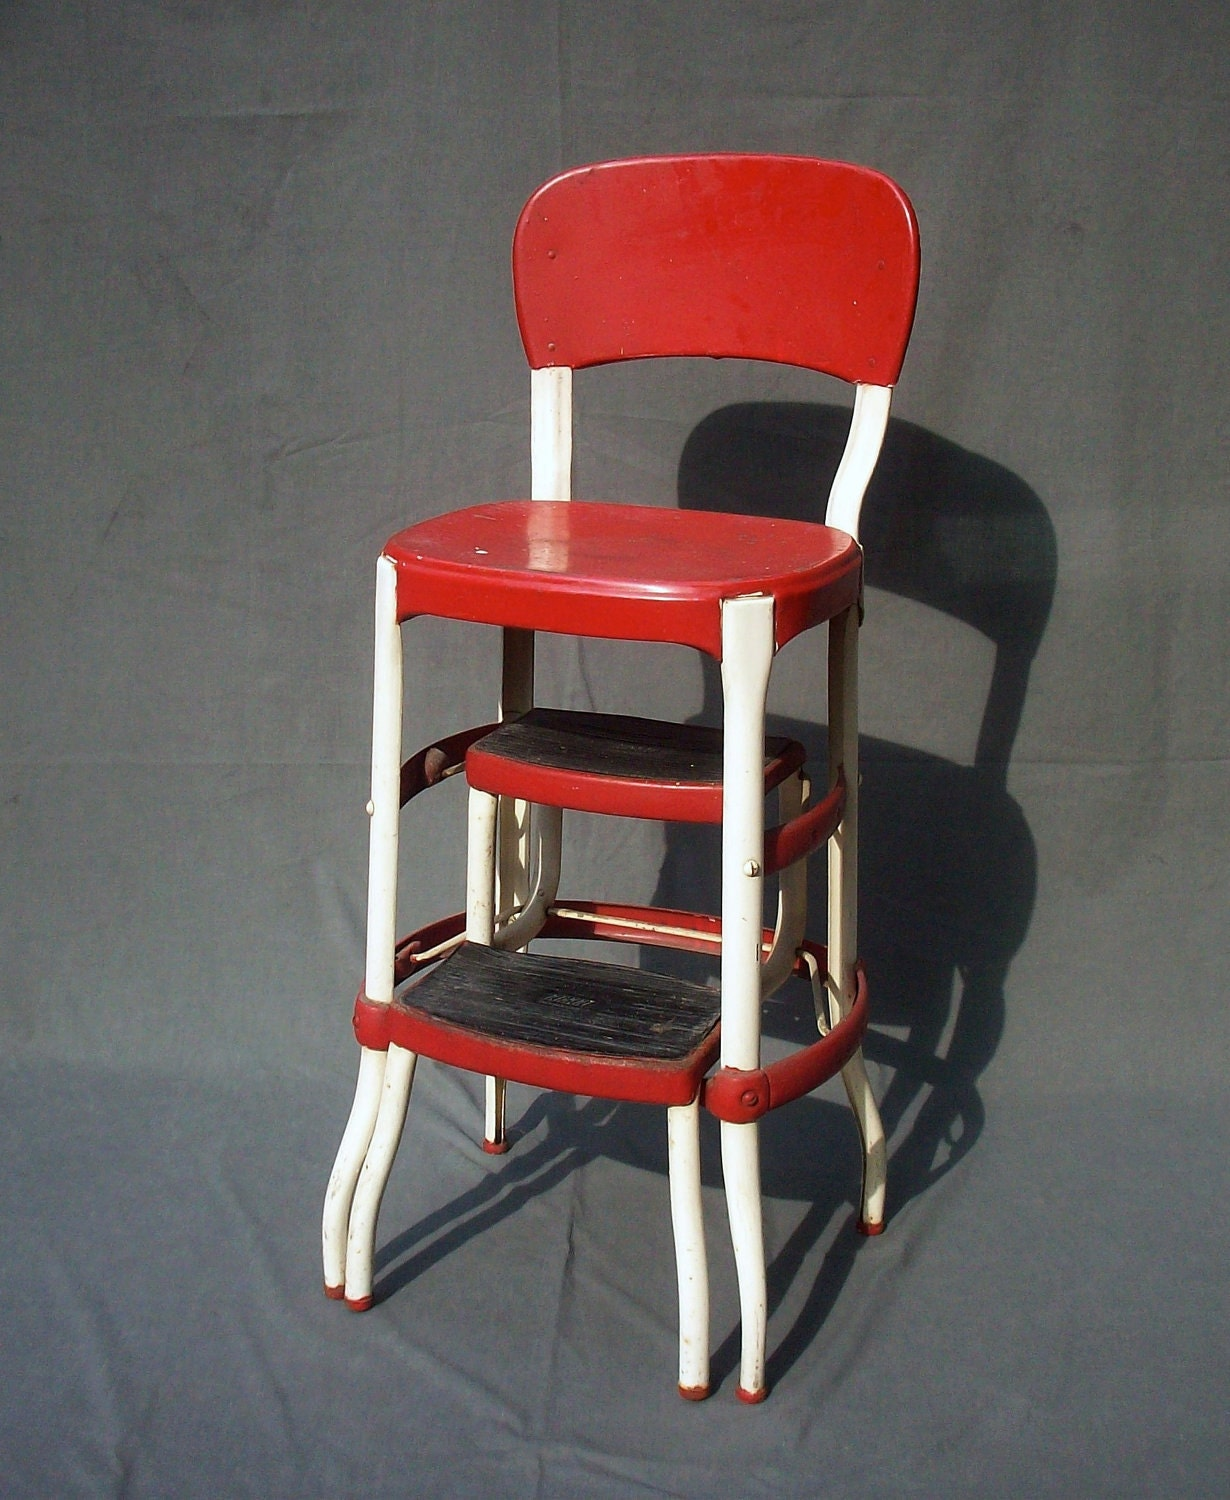 Vintage Cosco Metal Step Stool Chair